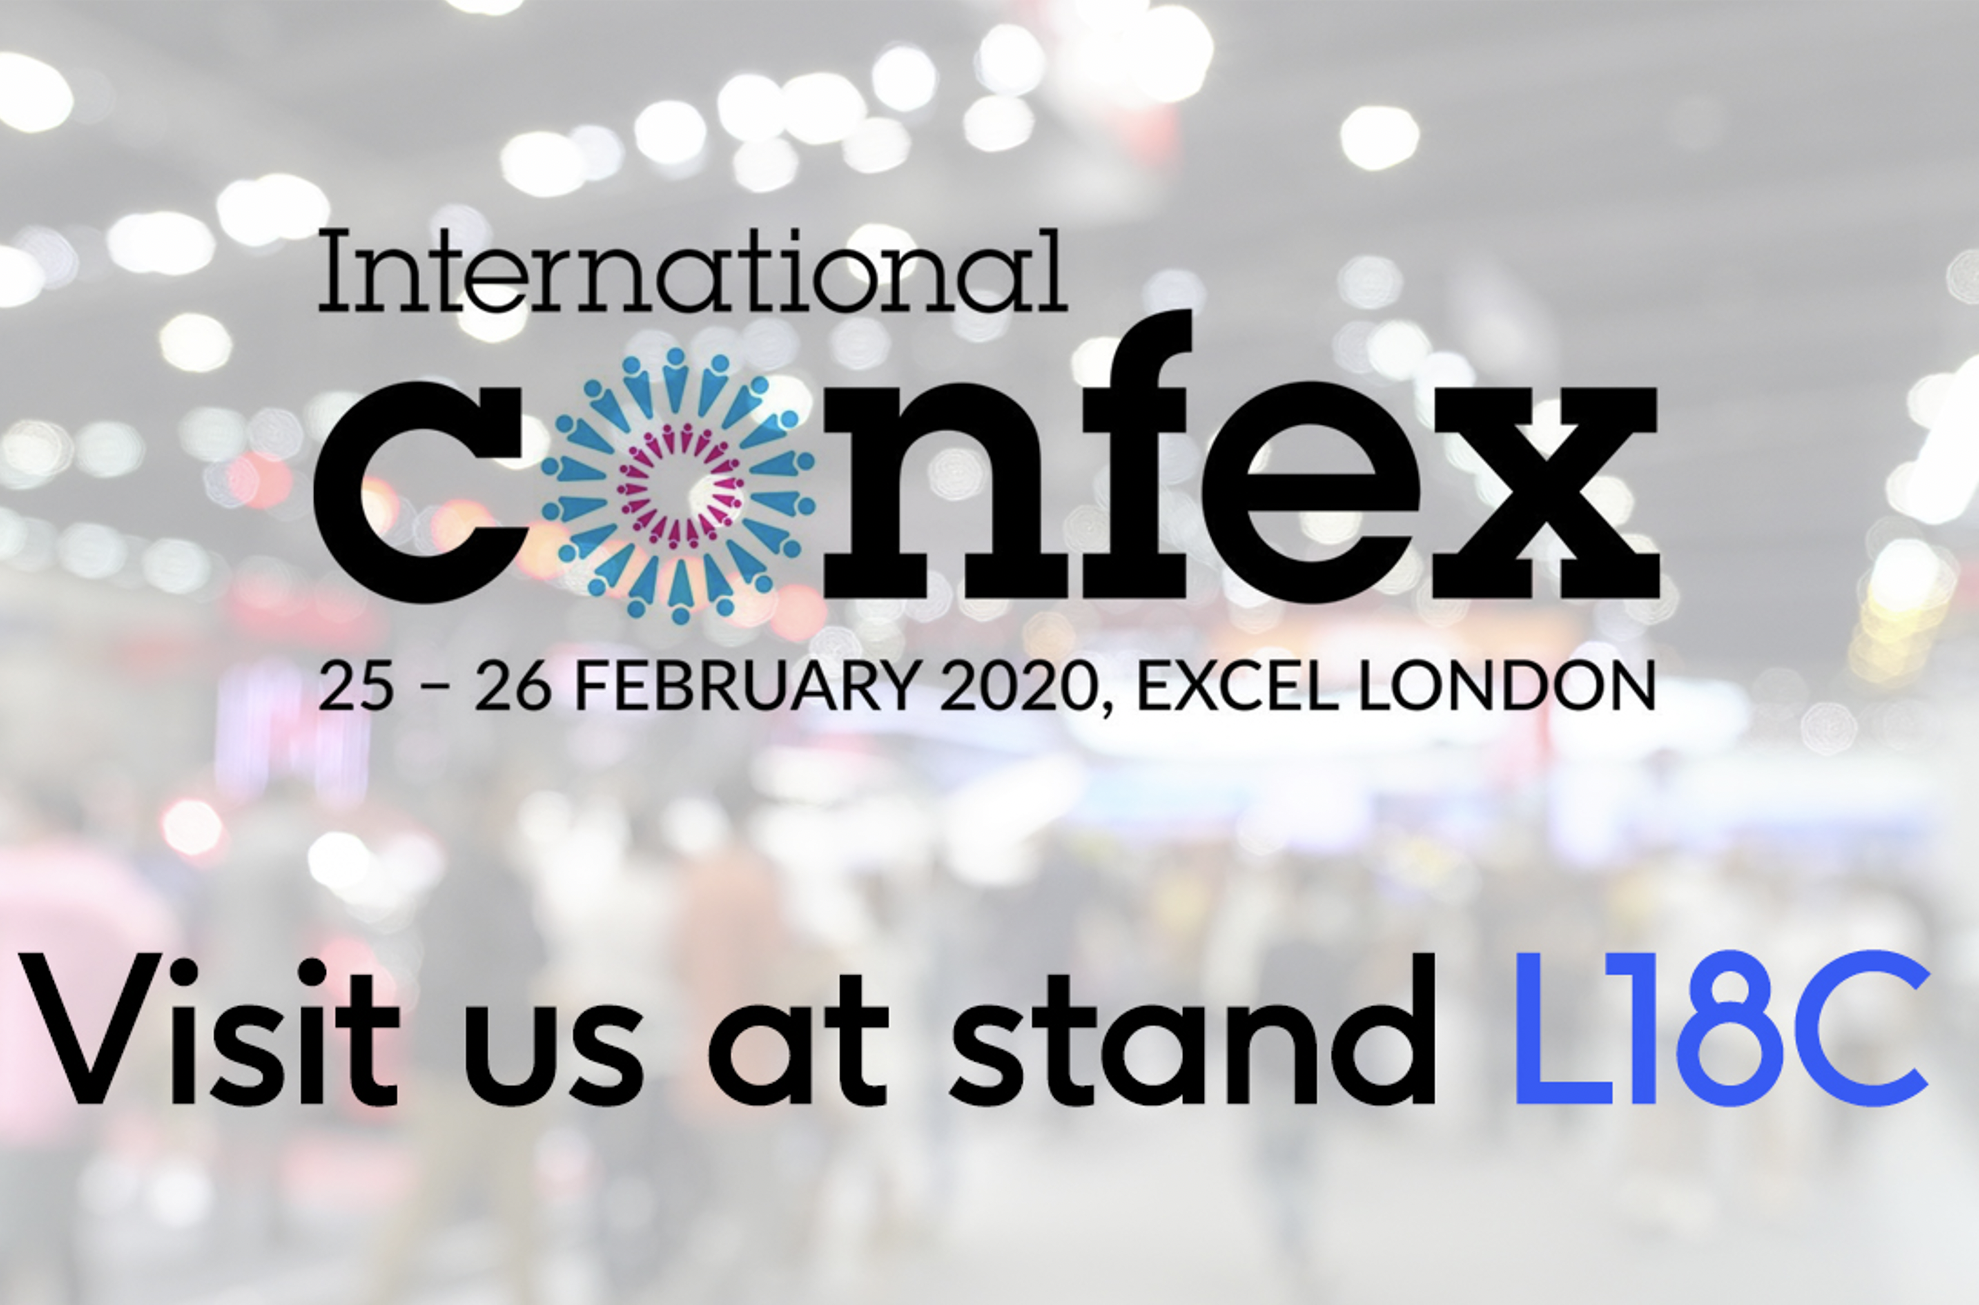 Open Audience exhibiting at International Confex 2020 at the Excel London